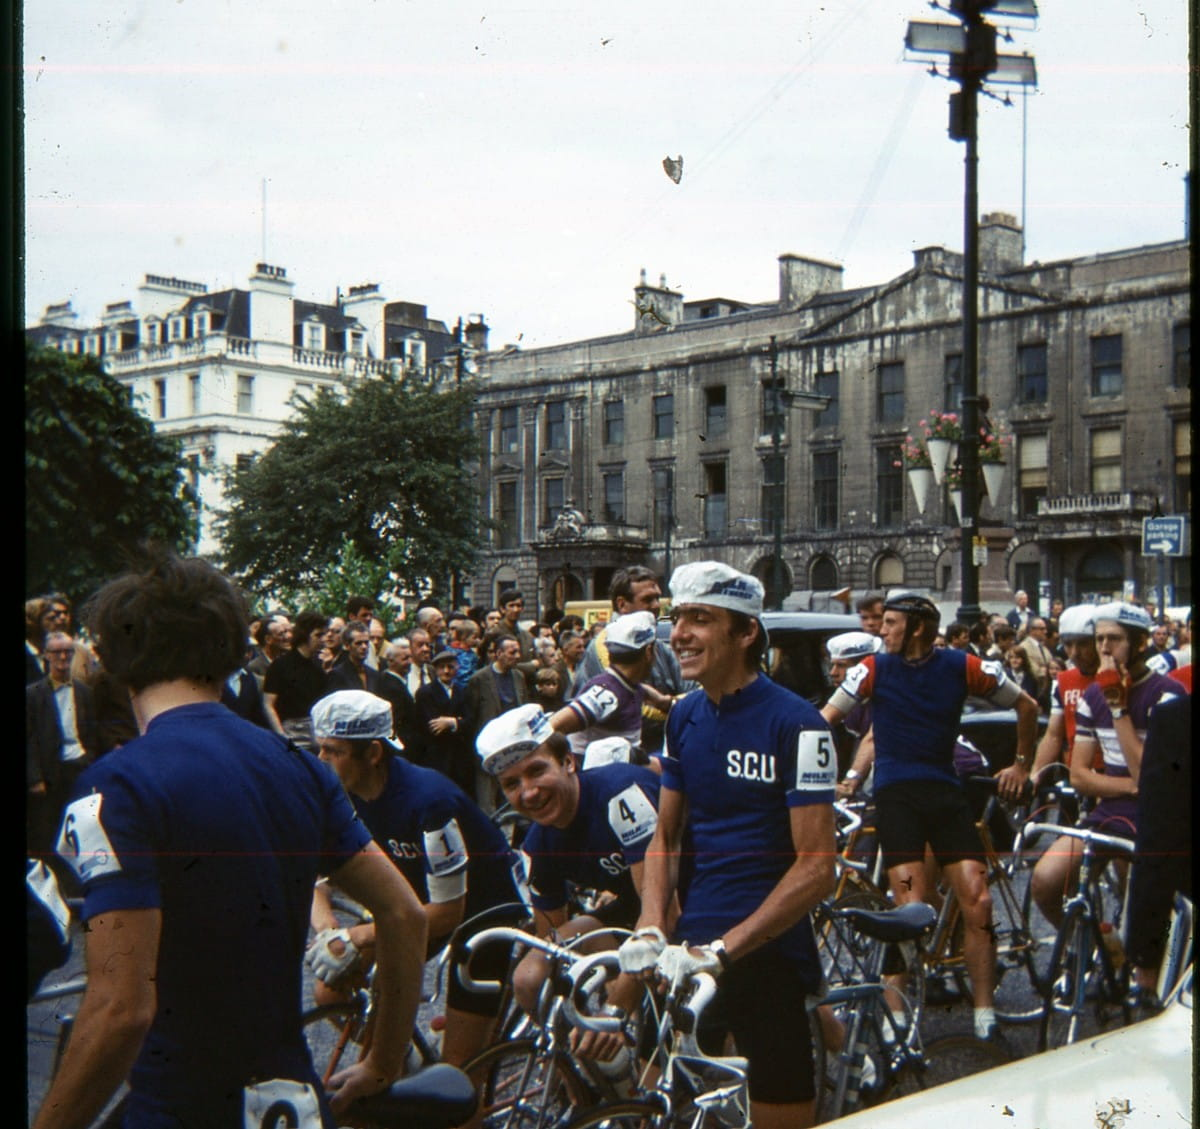 On yer bike! (The riders assemble outside the City Chambers)